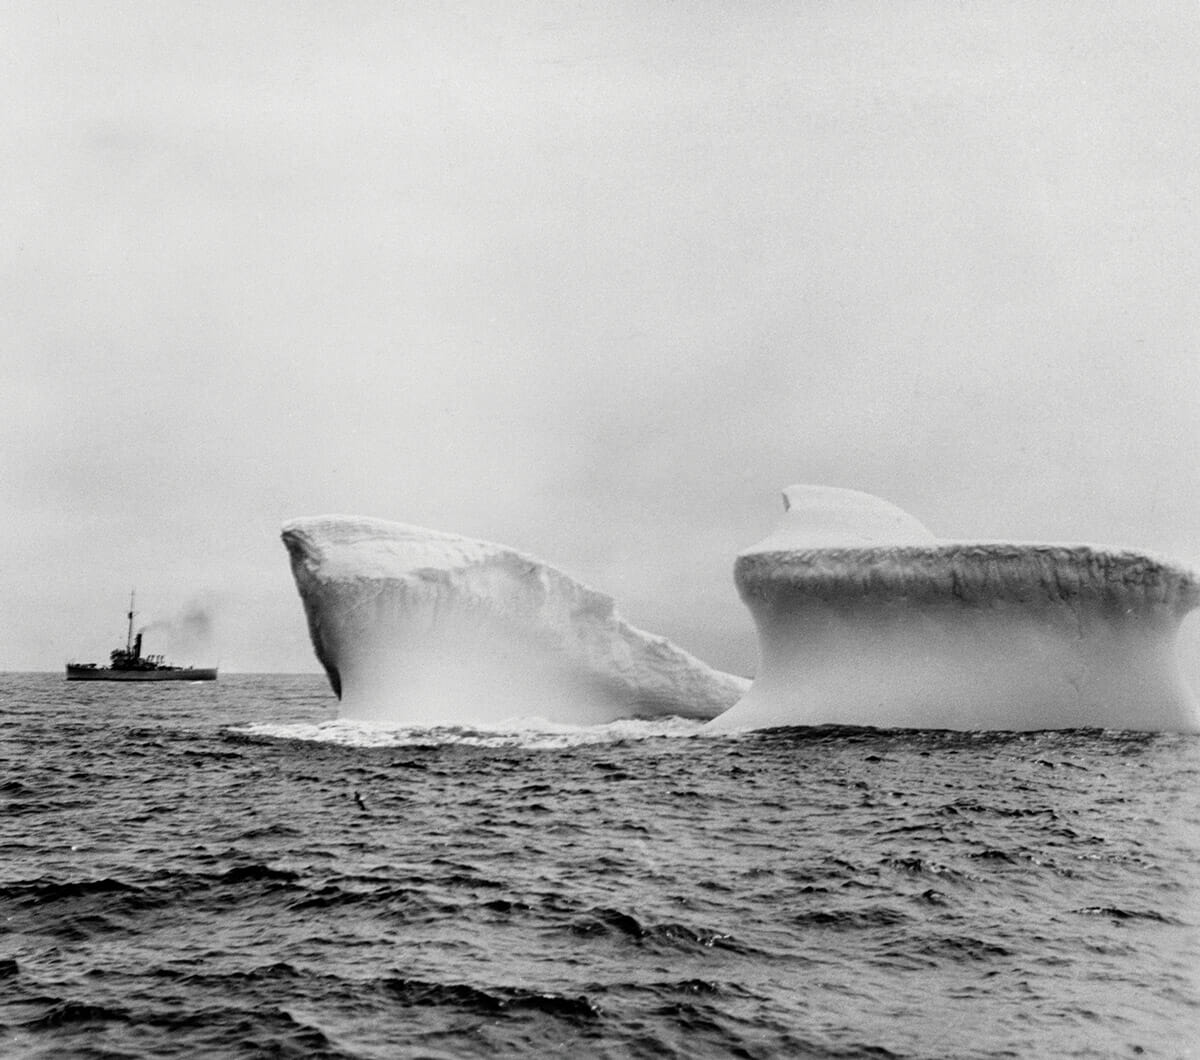 Ship sailing past iceberg in Antarctic waters.